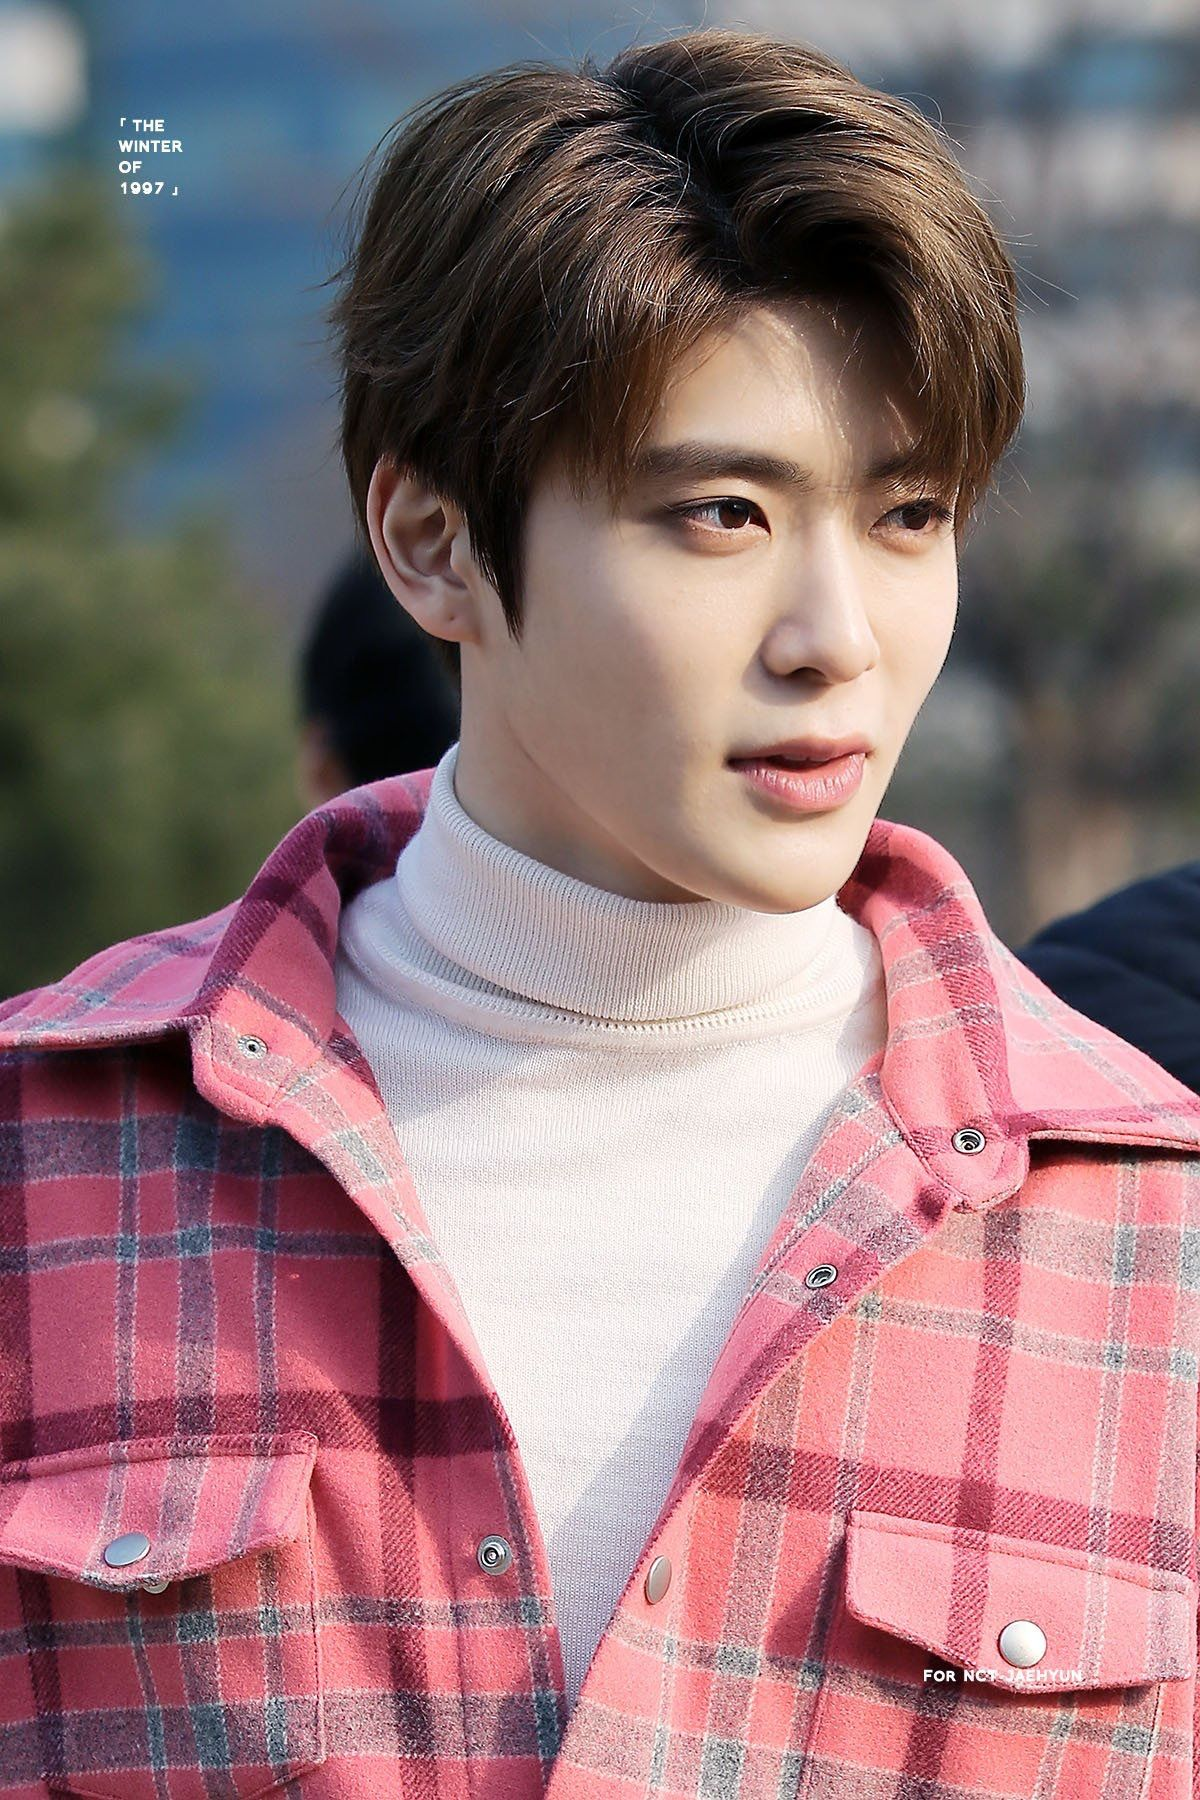 Nct S Best Visual Jaehyun Family Abs And Law Of The Jungle Appearances Channel K